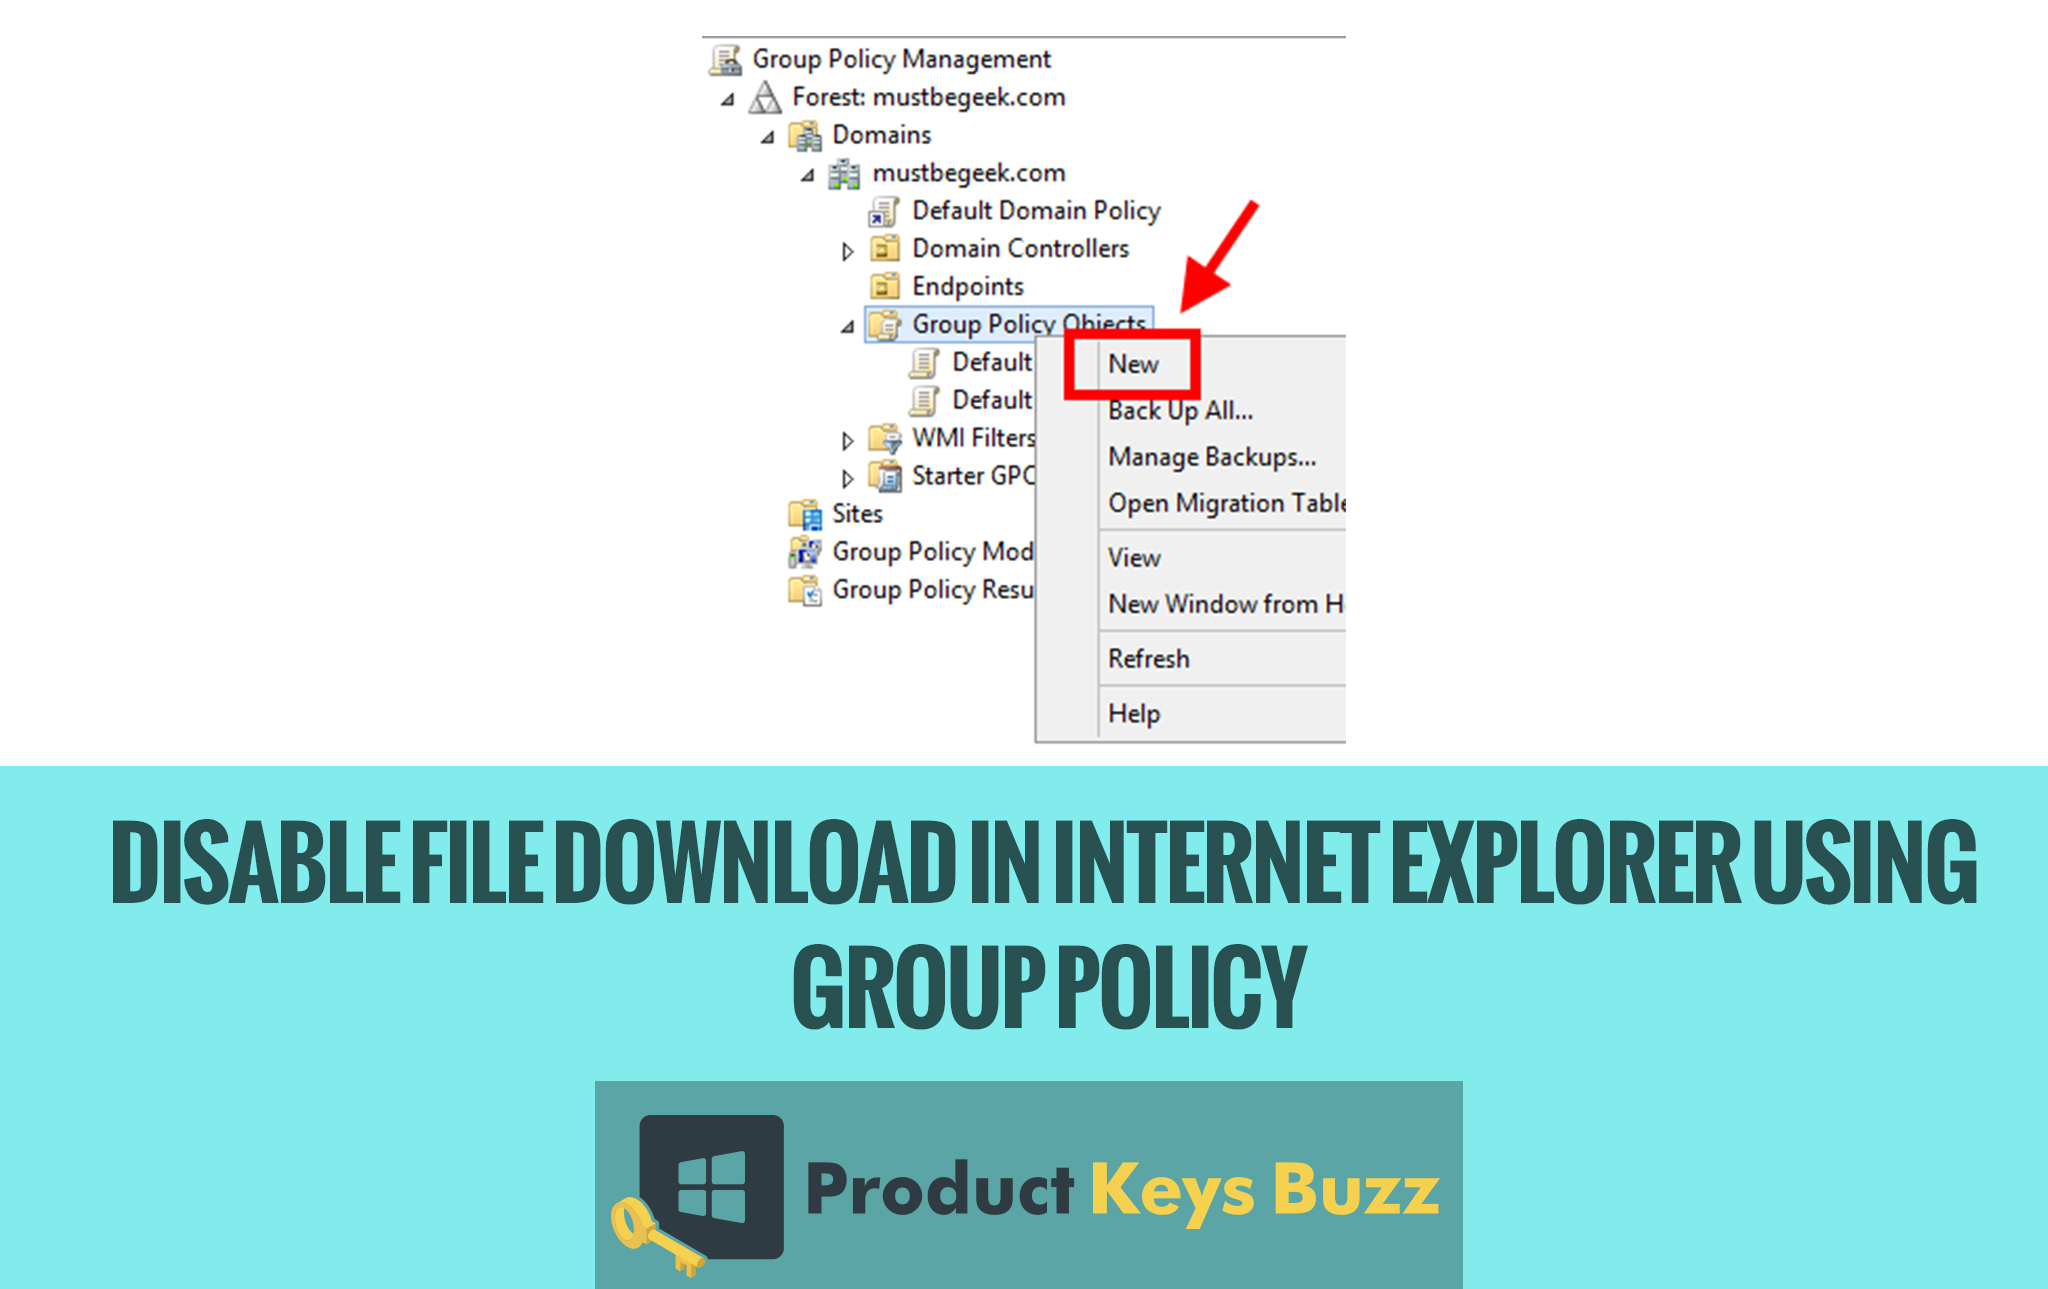 Disable File Download in Internet Explorer using Group Policy